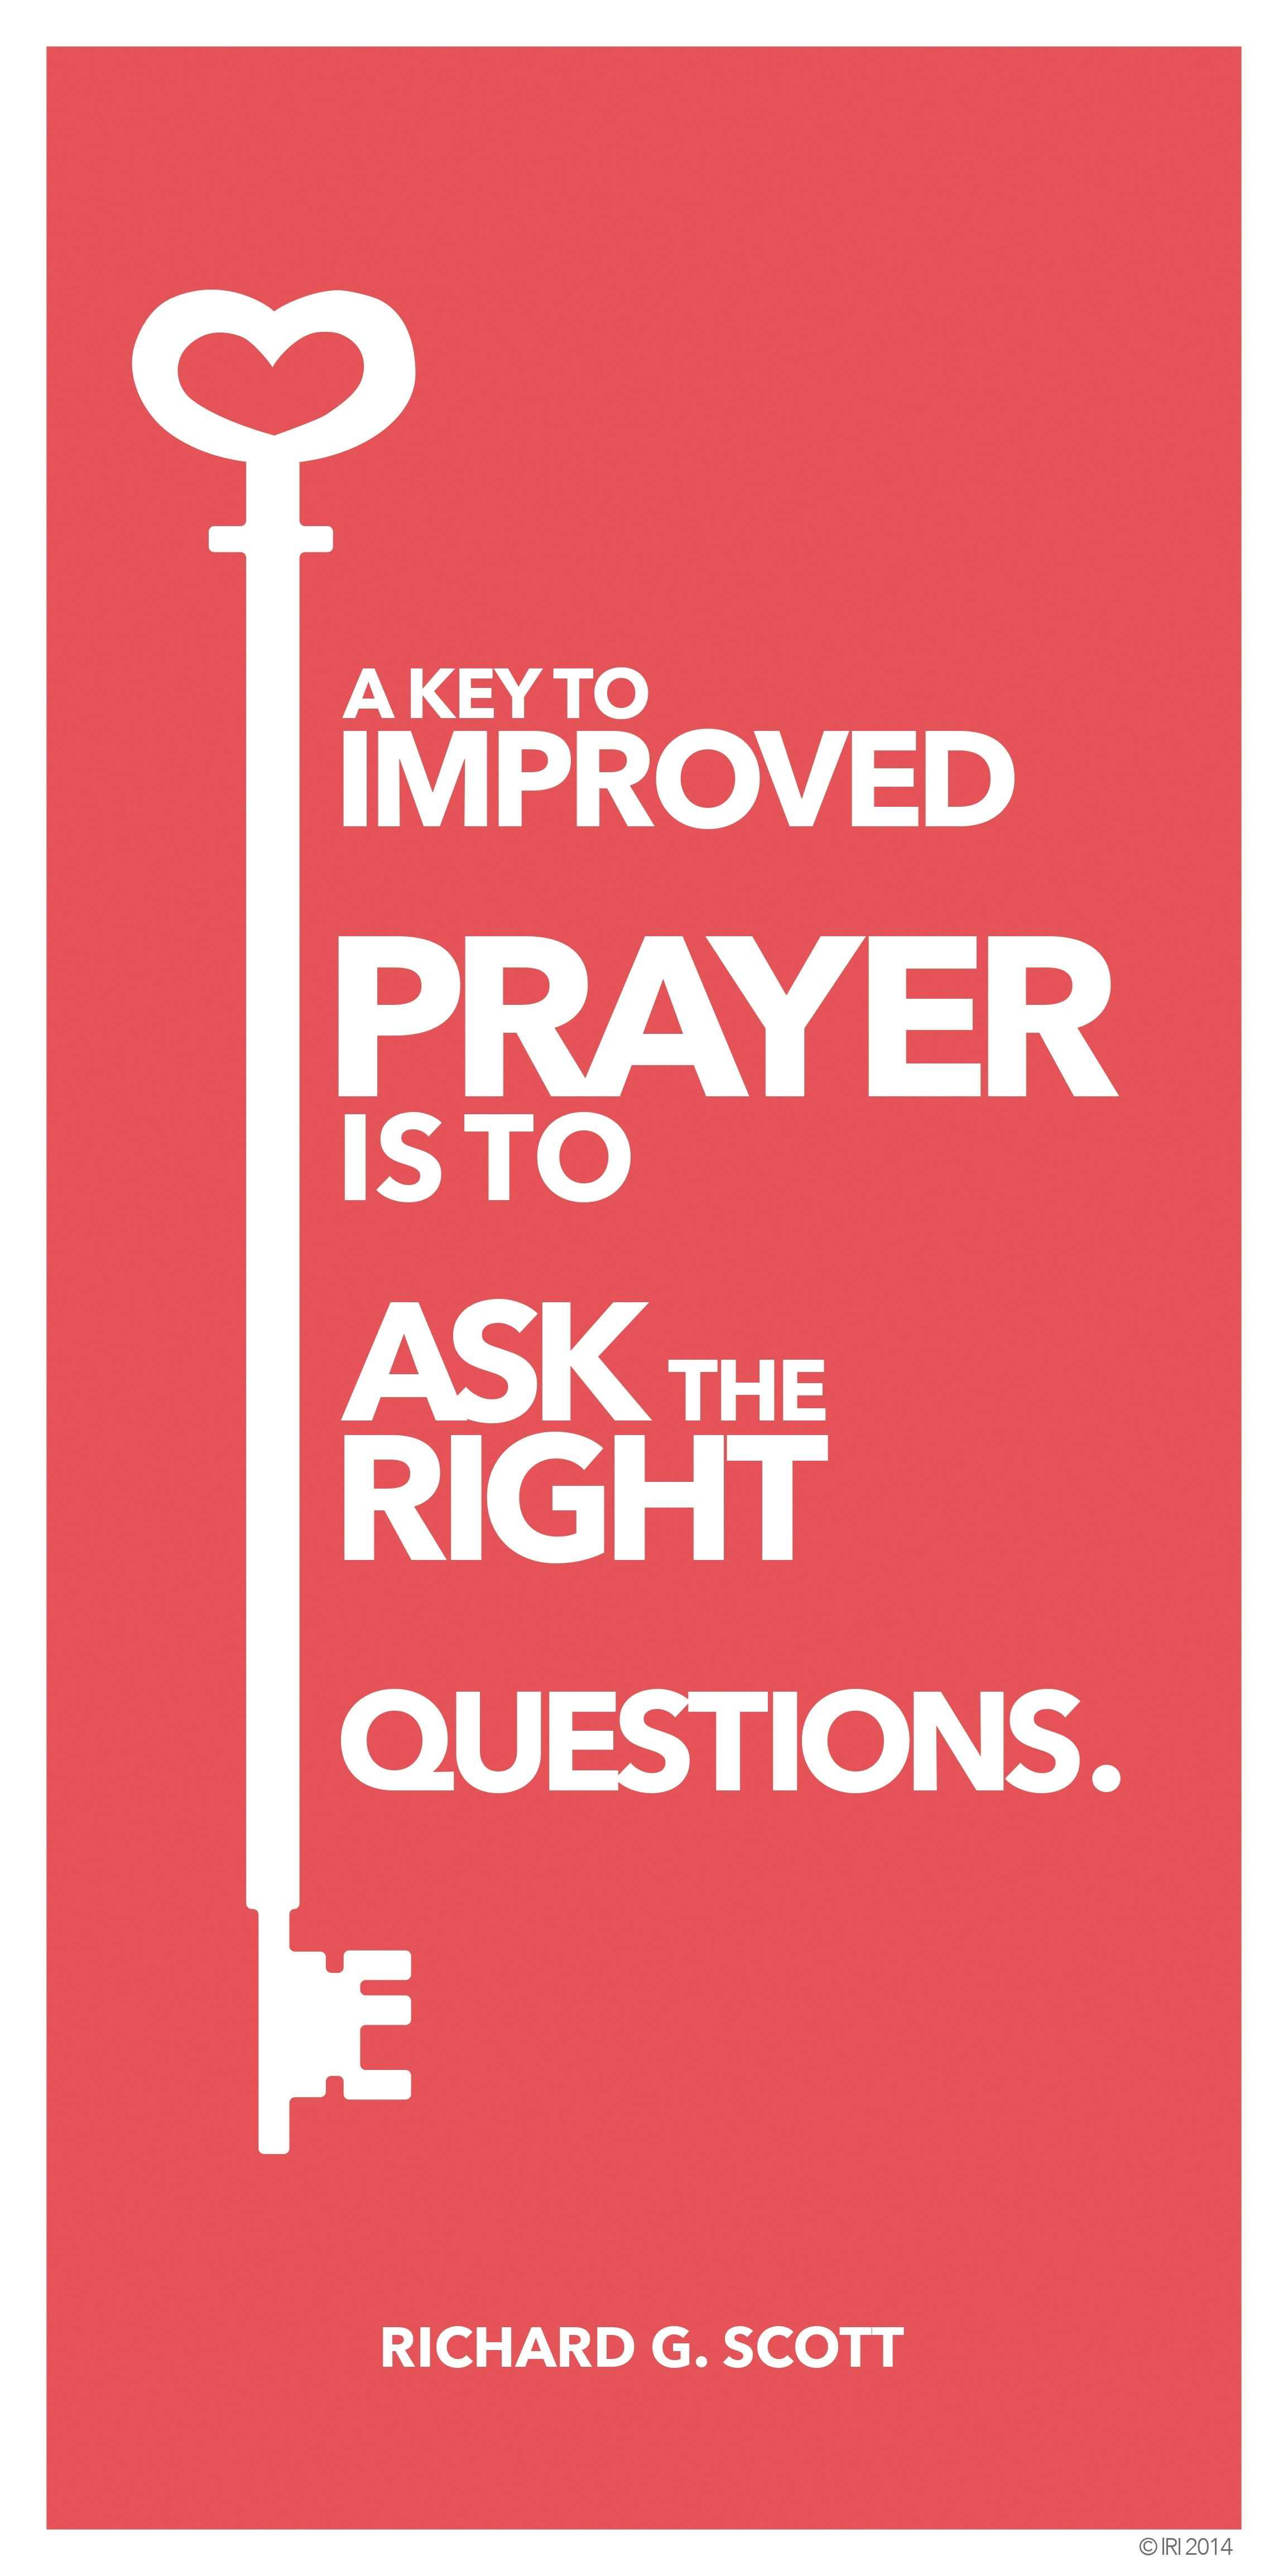 """A graphic of a key paired with a quote by Elder Richard G. Scott: """"A key to improved prayer is to ask the right questions."""""""